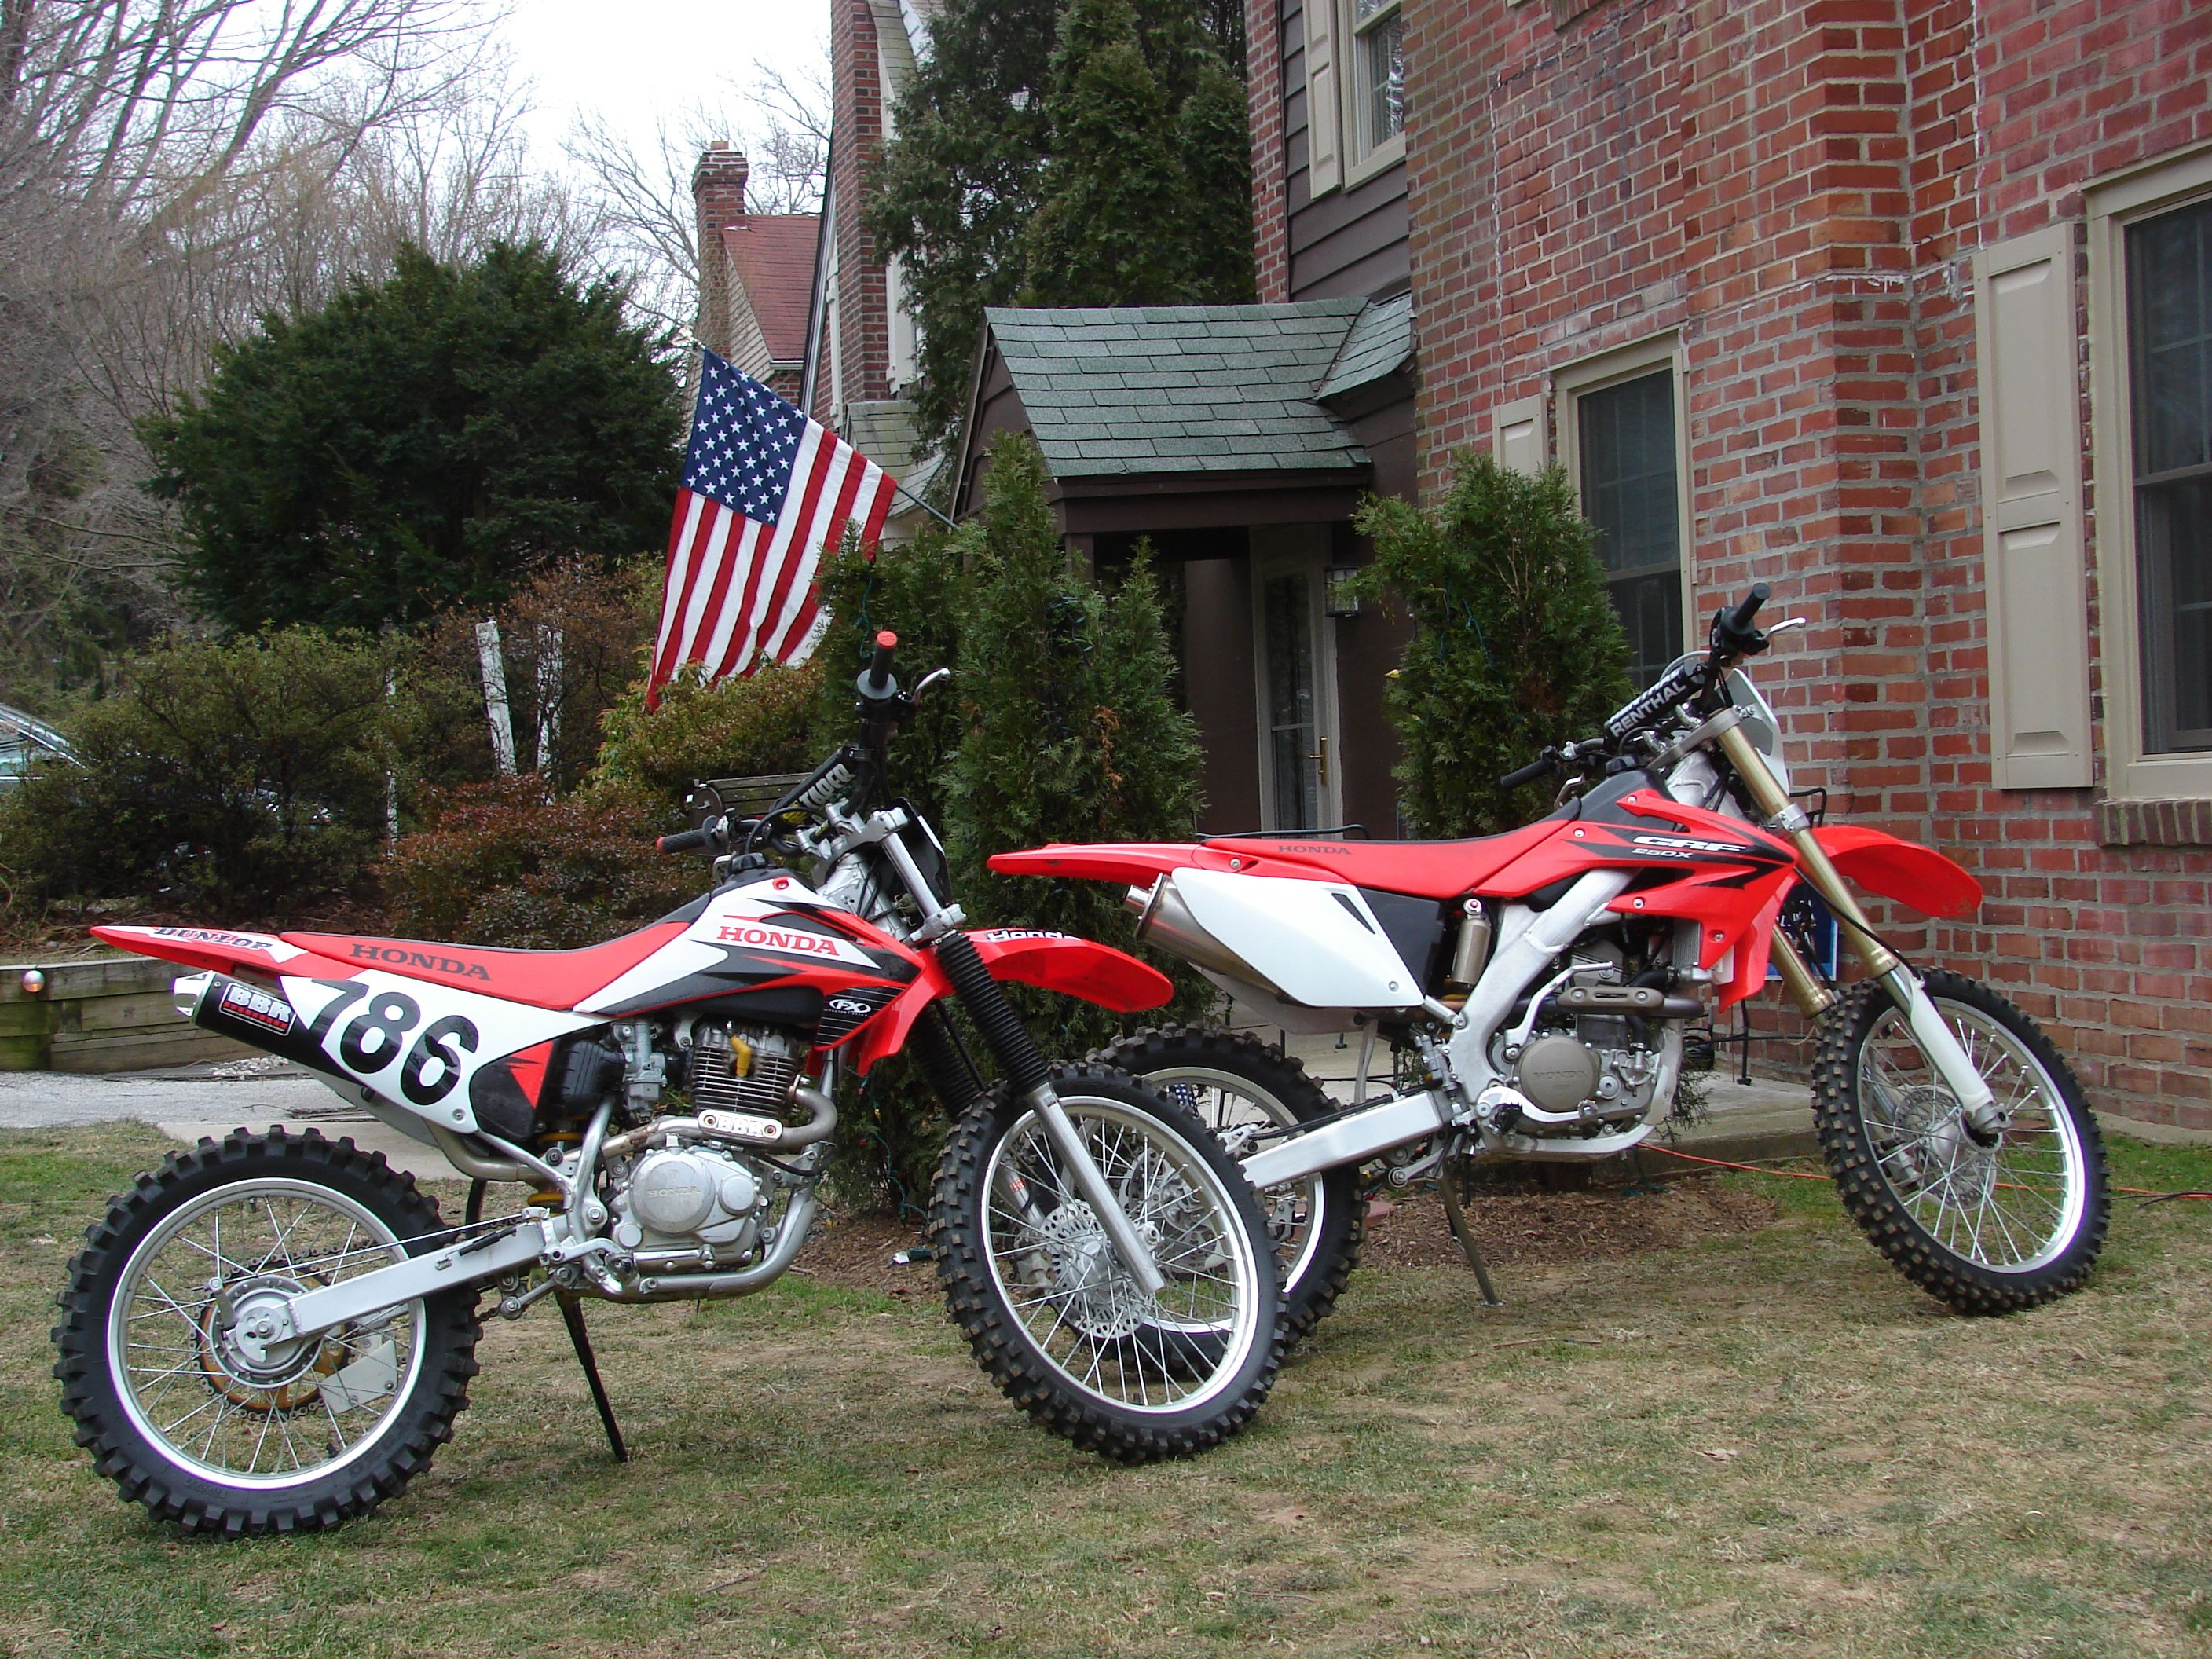 Sons bike crf230f with bbr kit pipe rejet carb air box front honda fandeluxe Images